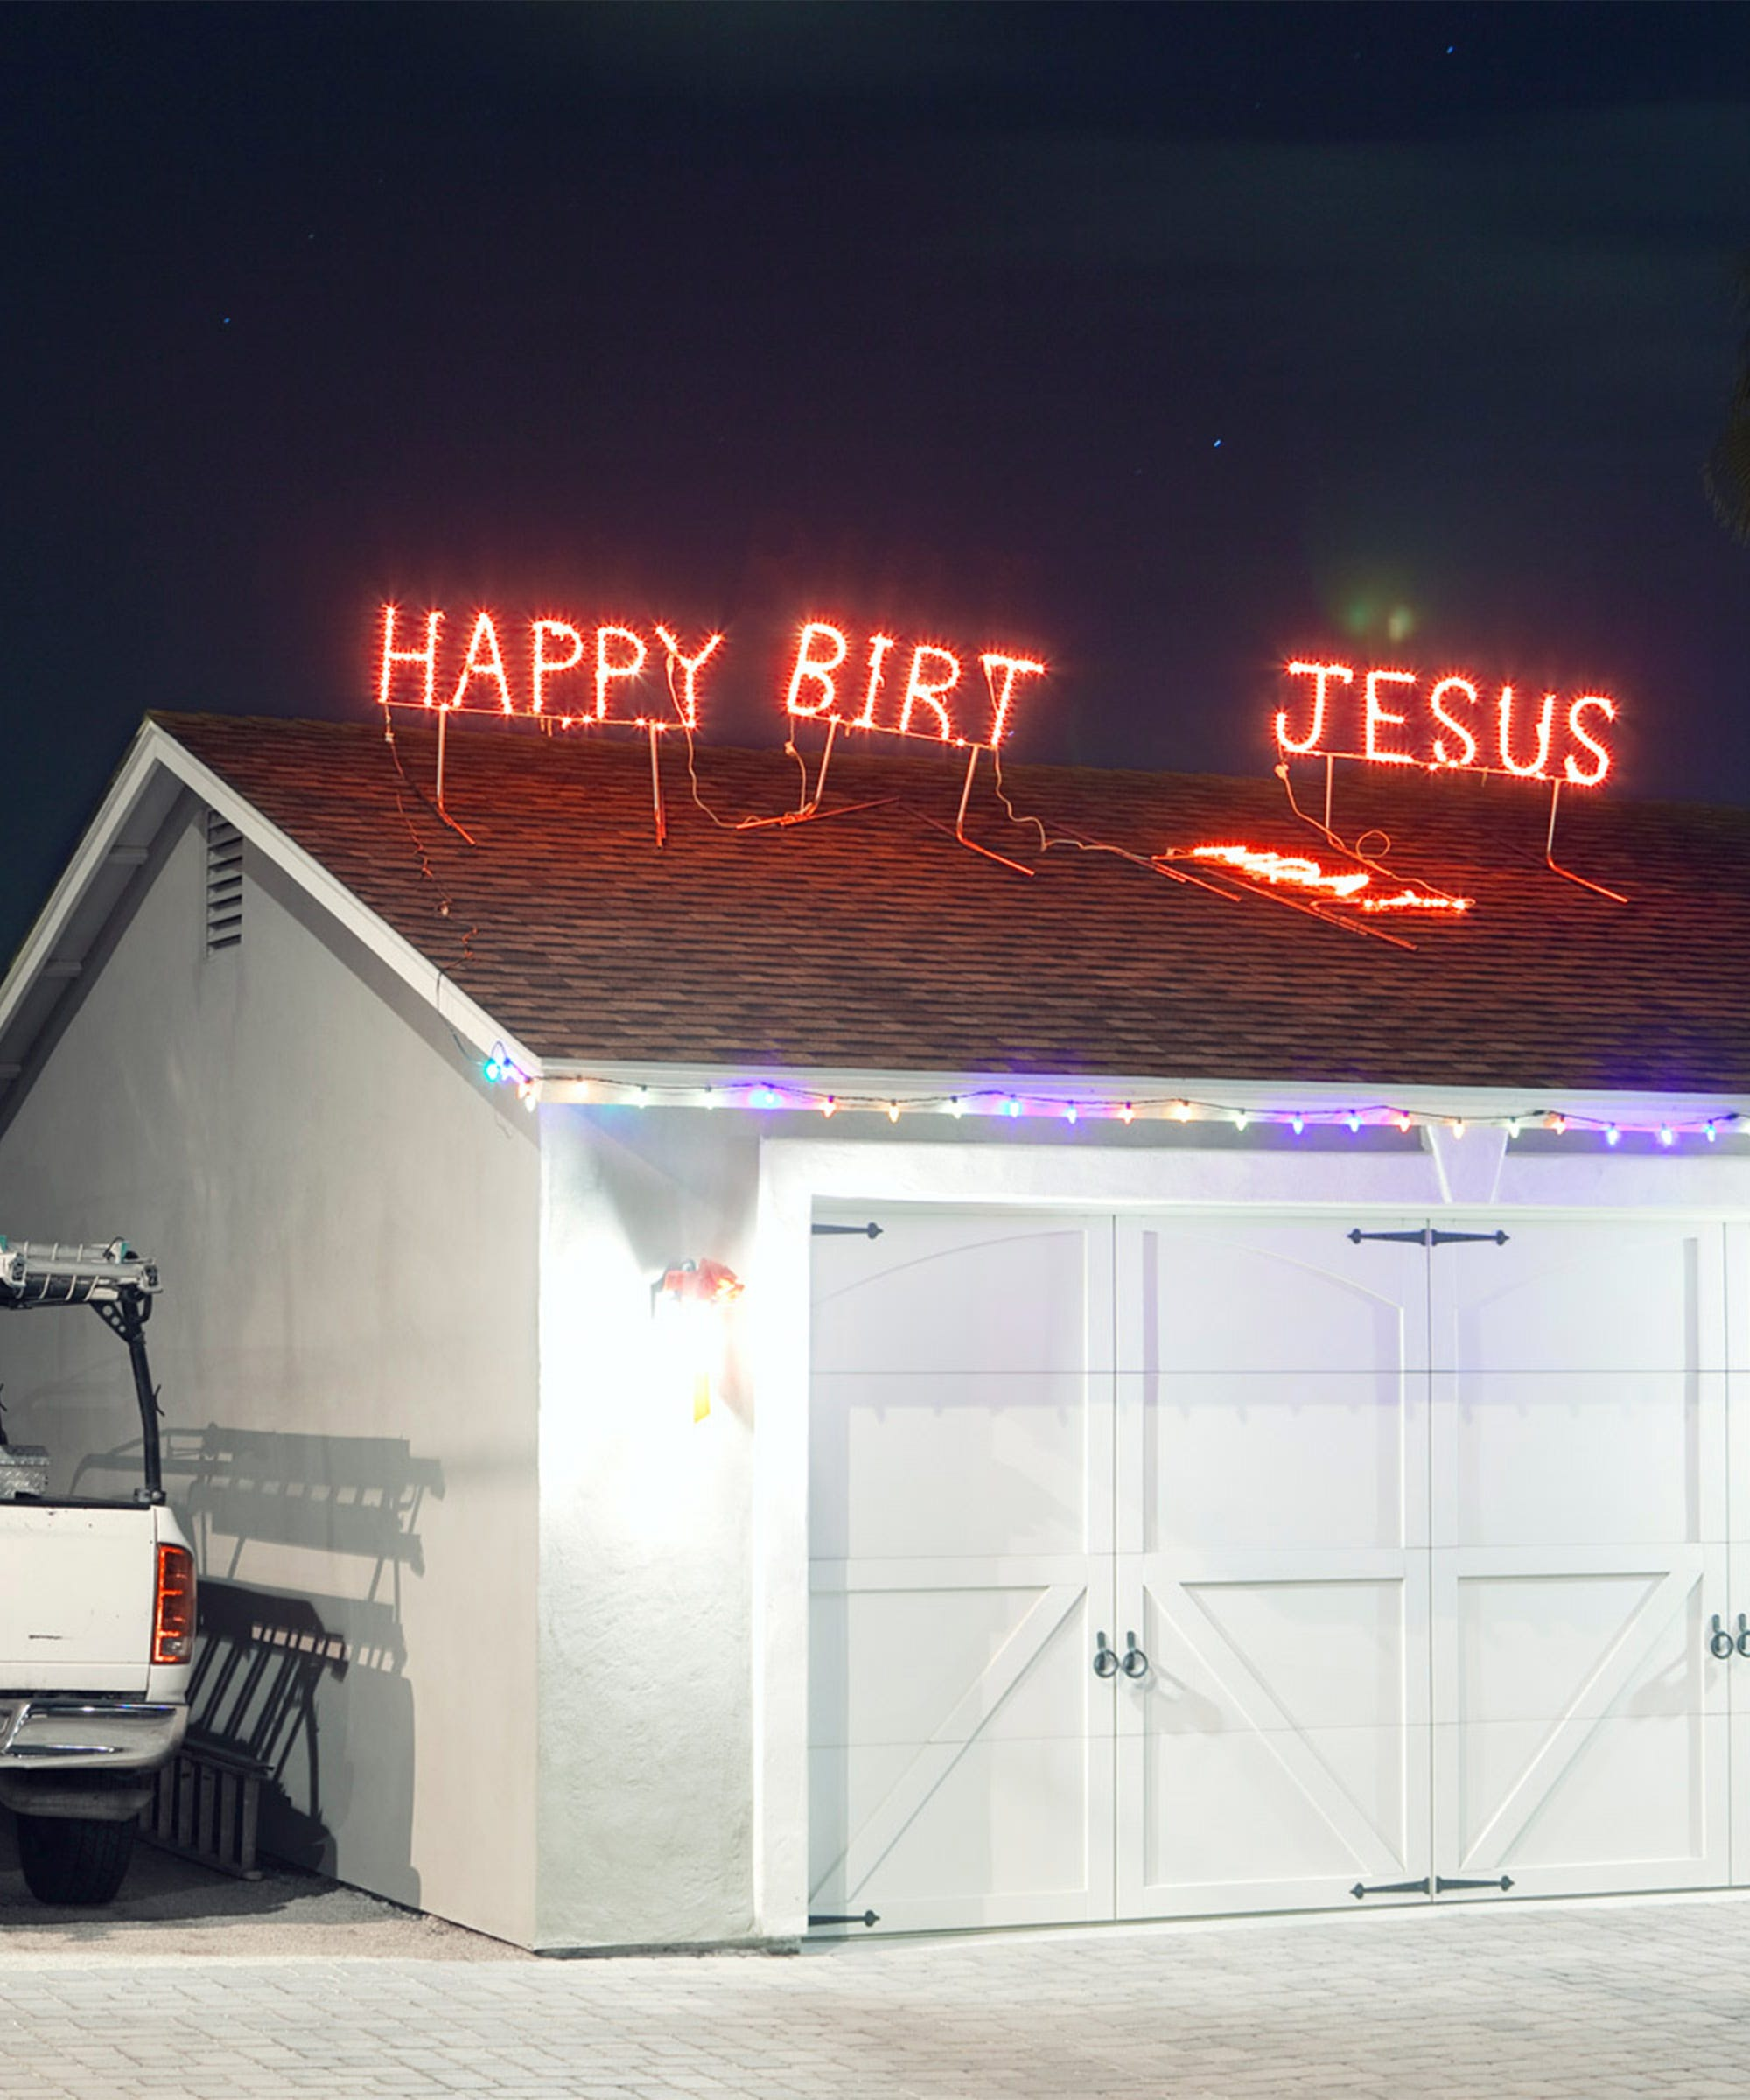 christmas in suburbia photo essay happy birthday jesus amazing photos of christmas in suburbia